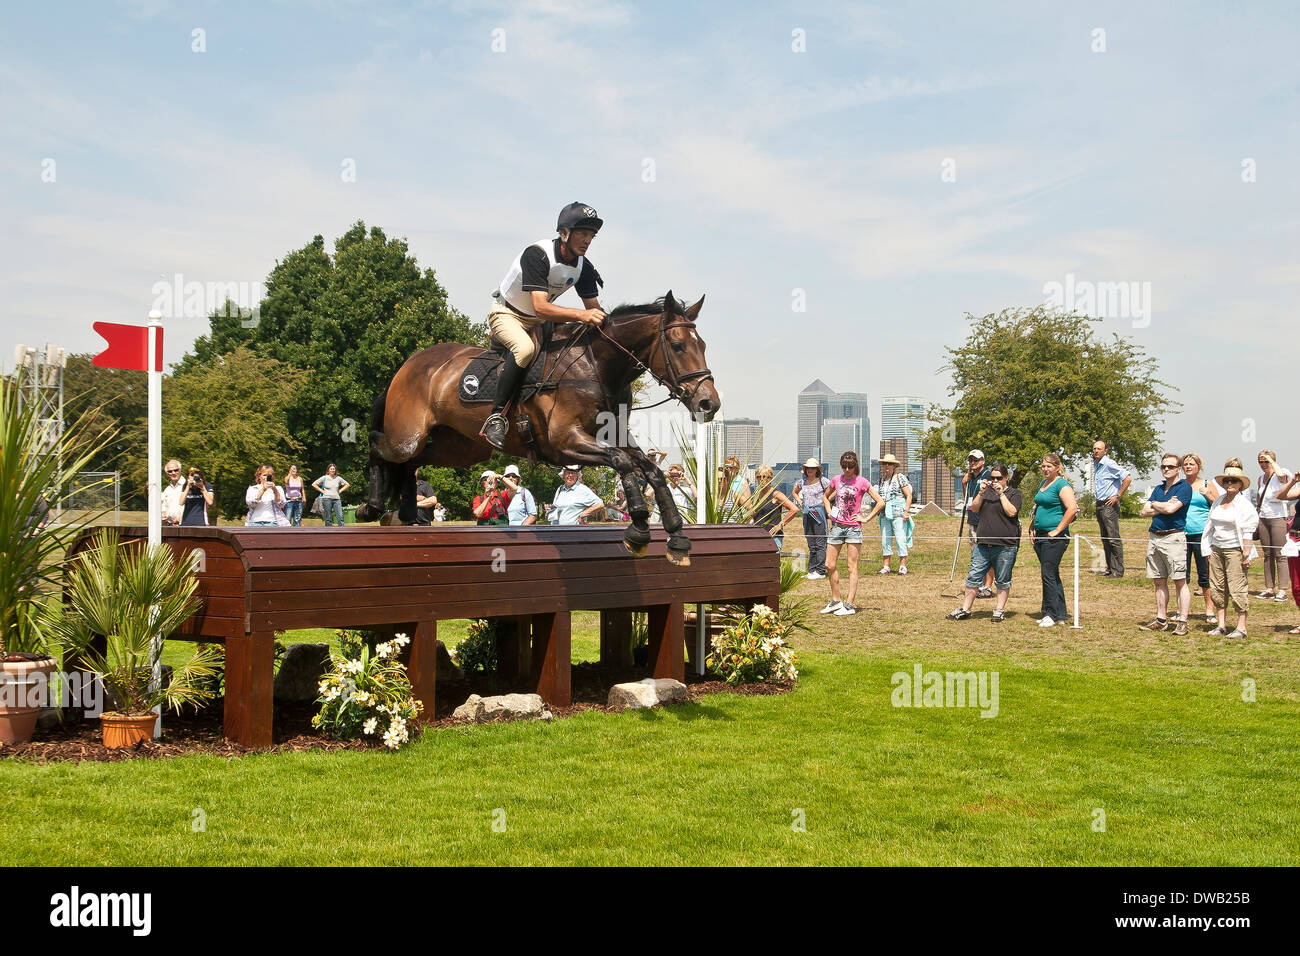 Three day eventing in London - Stock Image